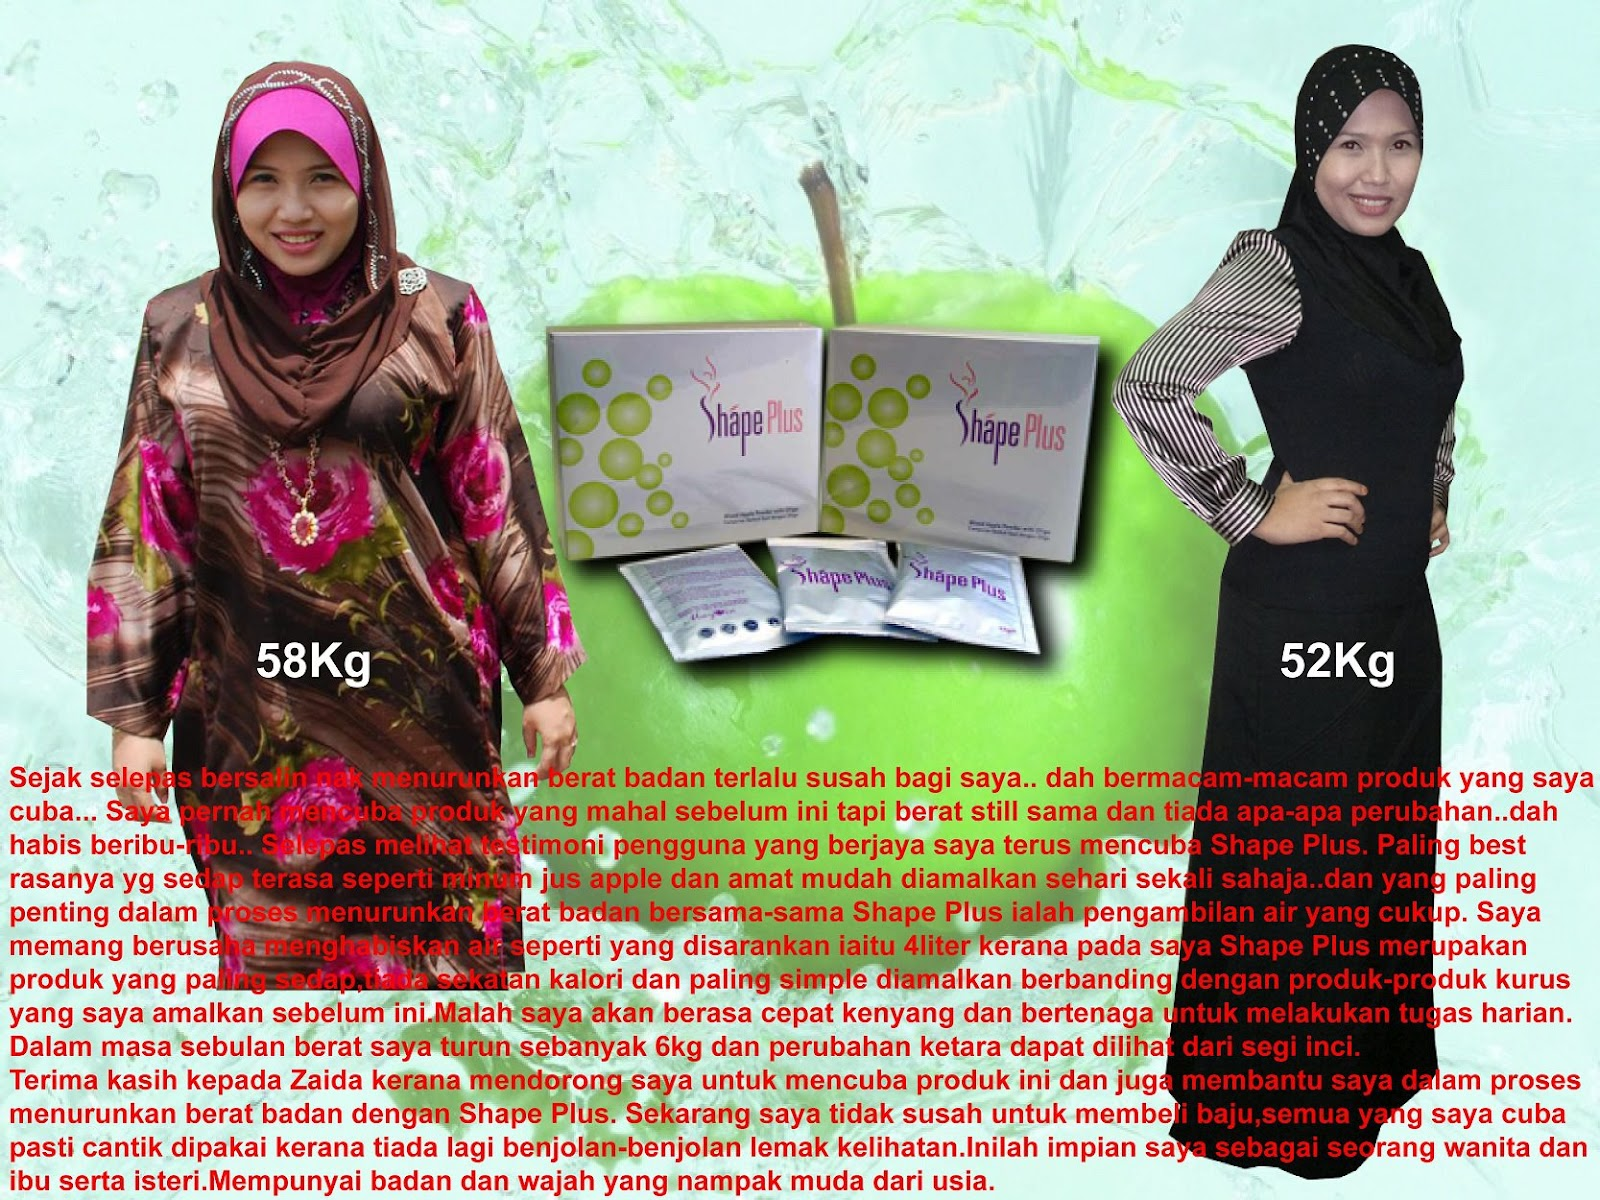 She lost 6kg within a month dengan Shape Plus!